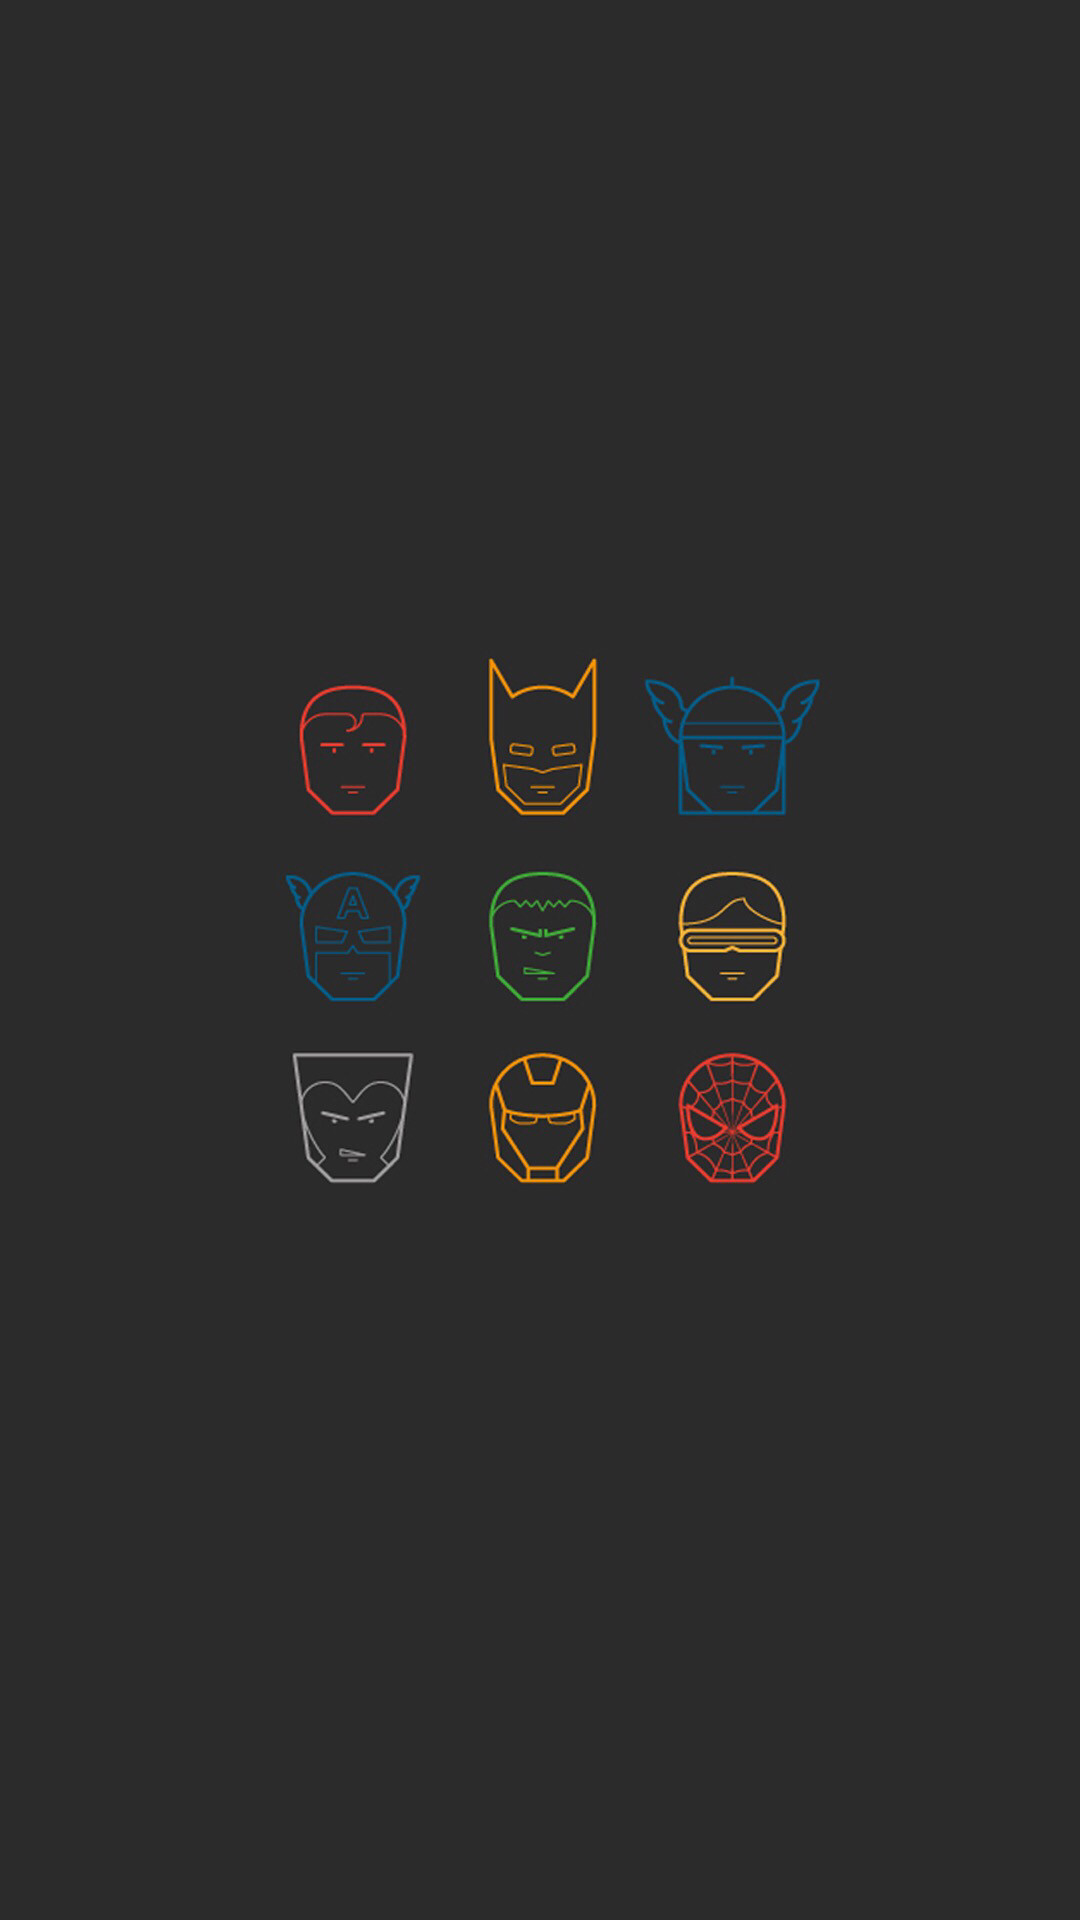 Android Marvel Wallpaper Hd For Mobile 1080x1920